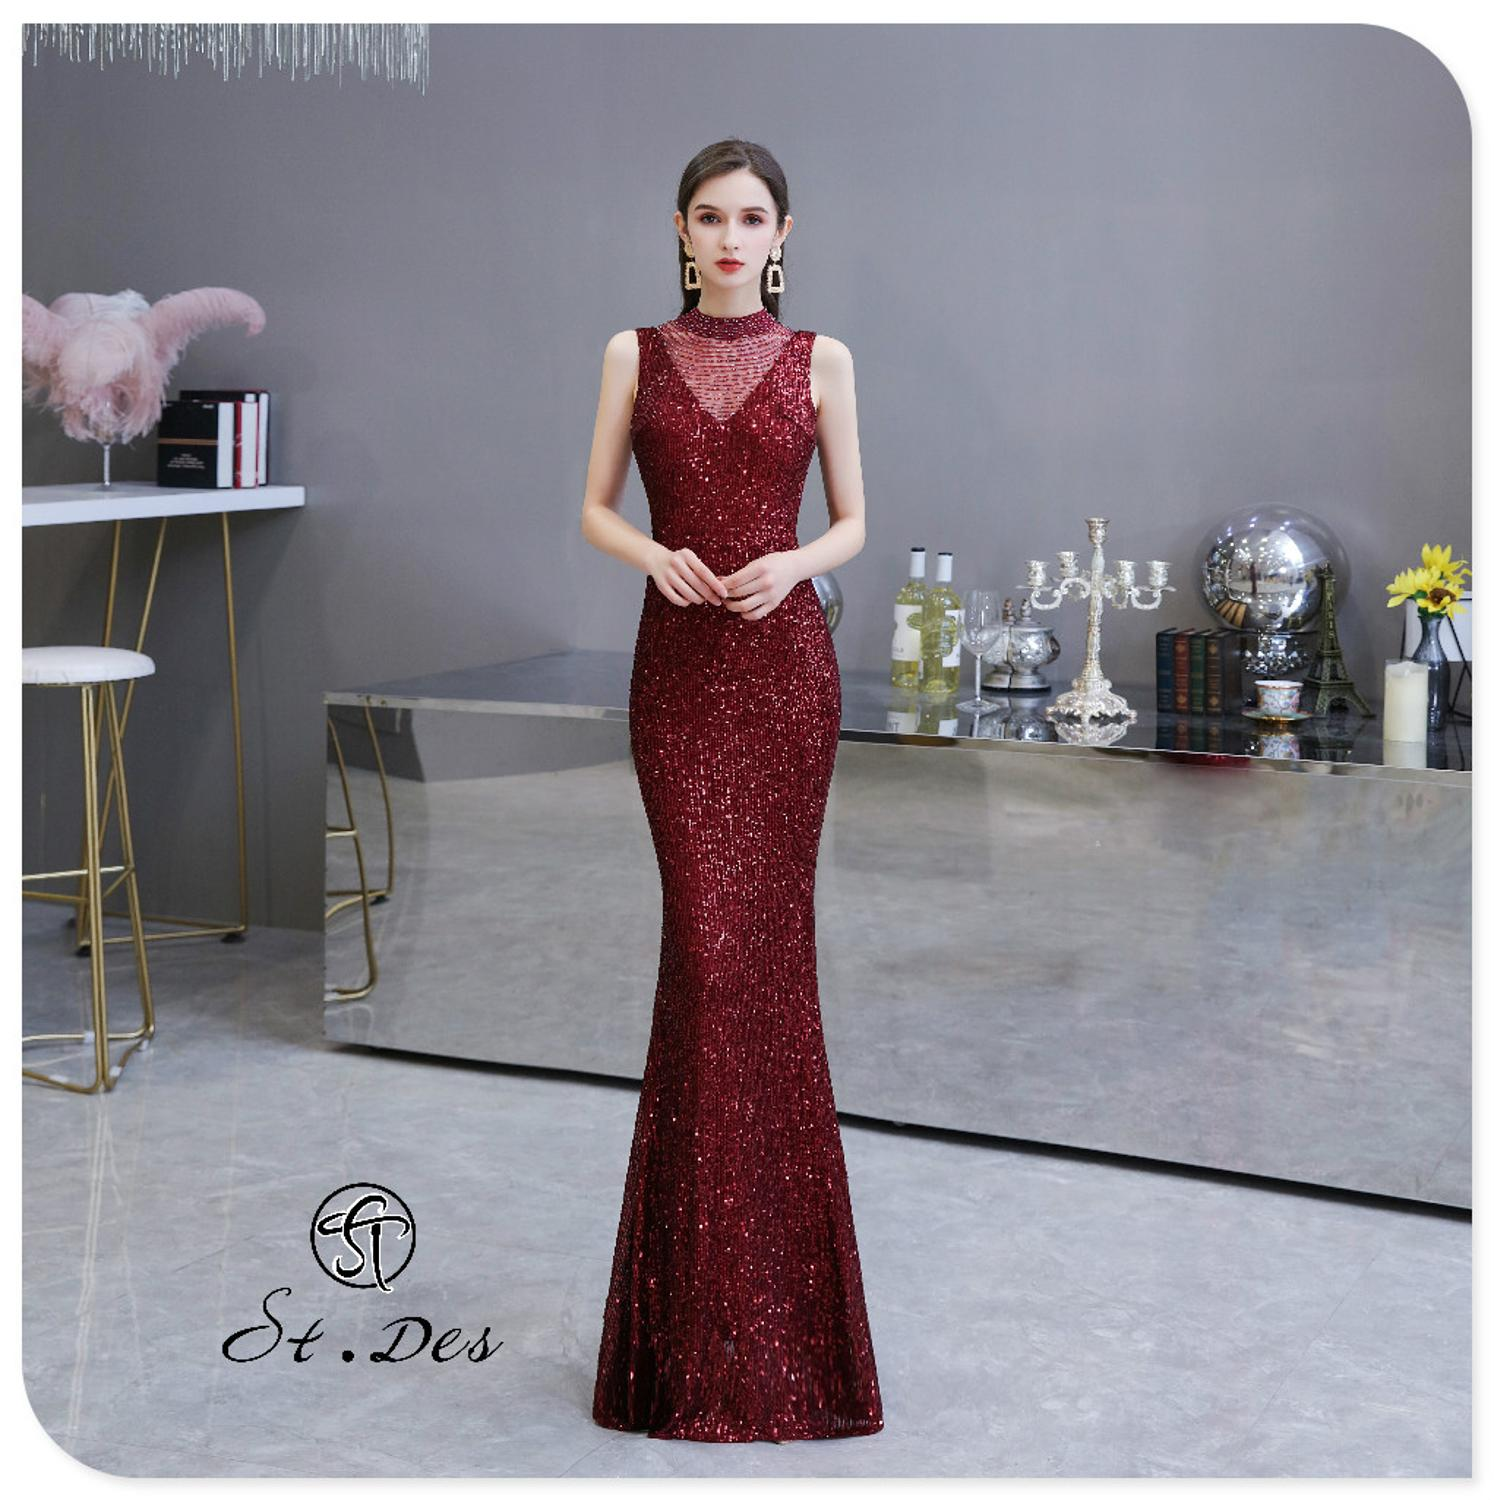 S.T.DES Evening Dress 2020 New Arrival Colorful Beading Mermaid V-Neck Wine Sleeveless Floor Length Party Dress Dinner Gowns